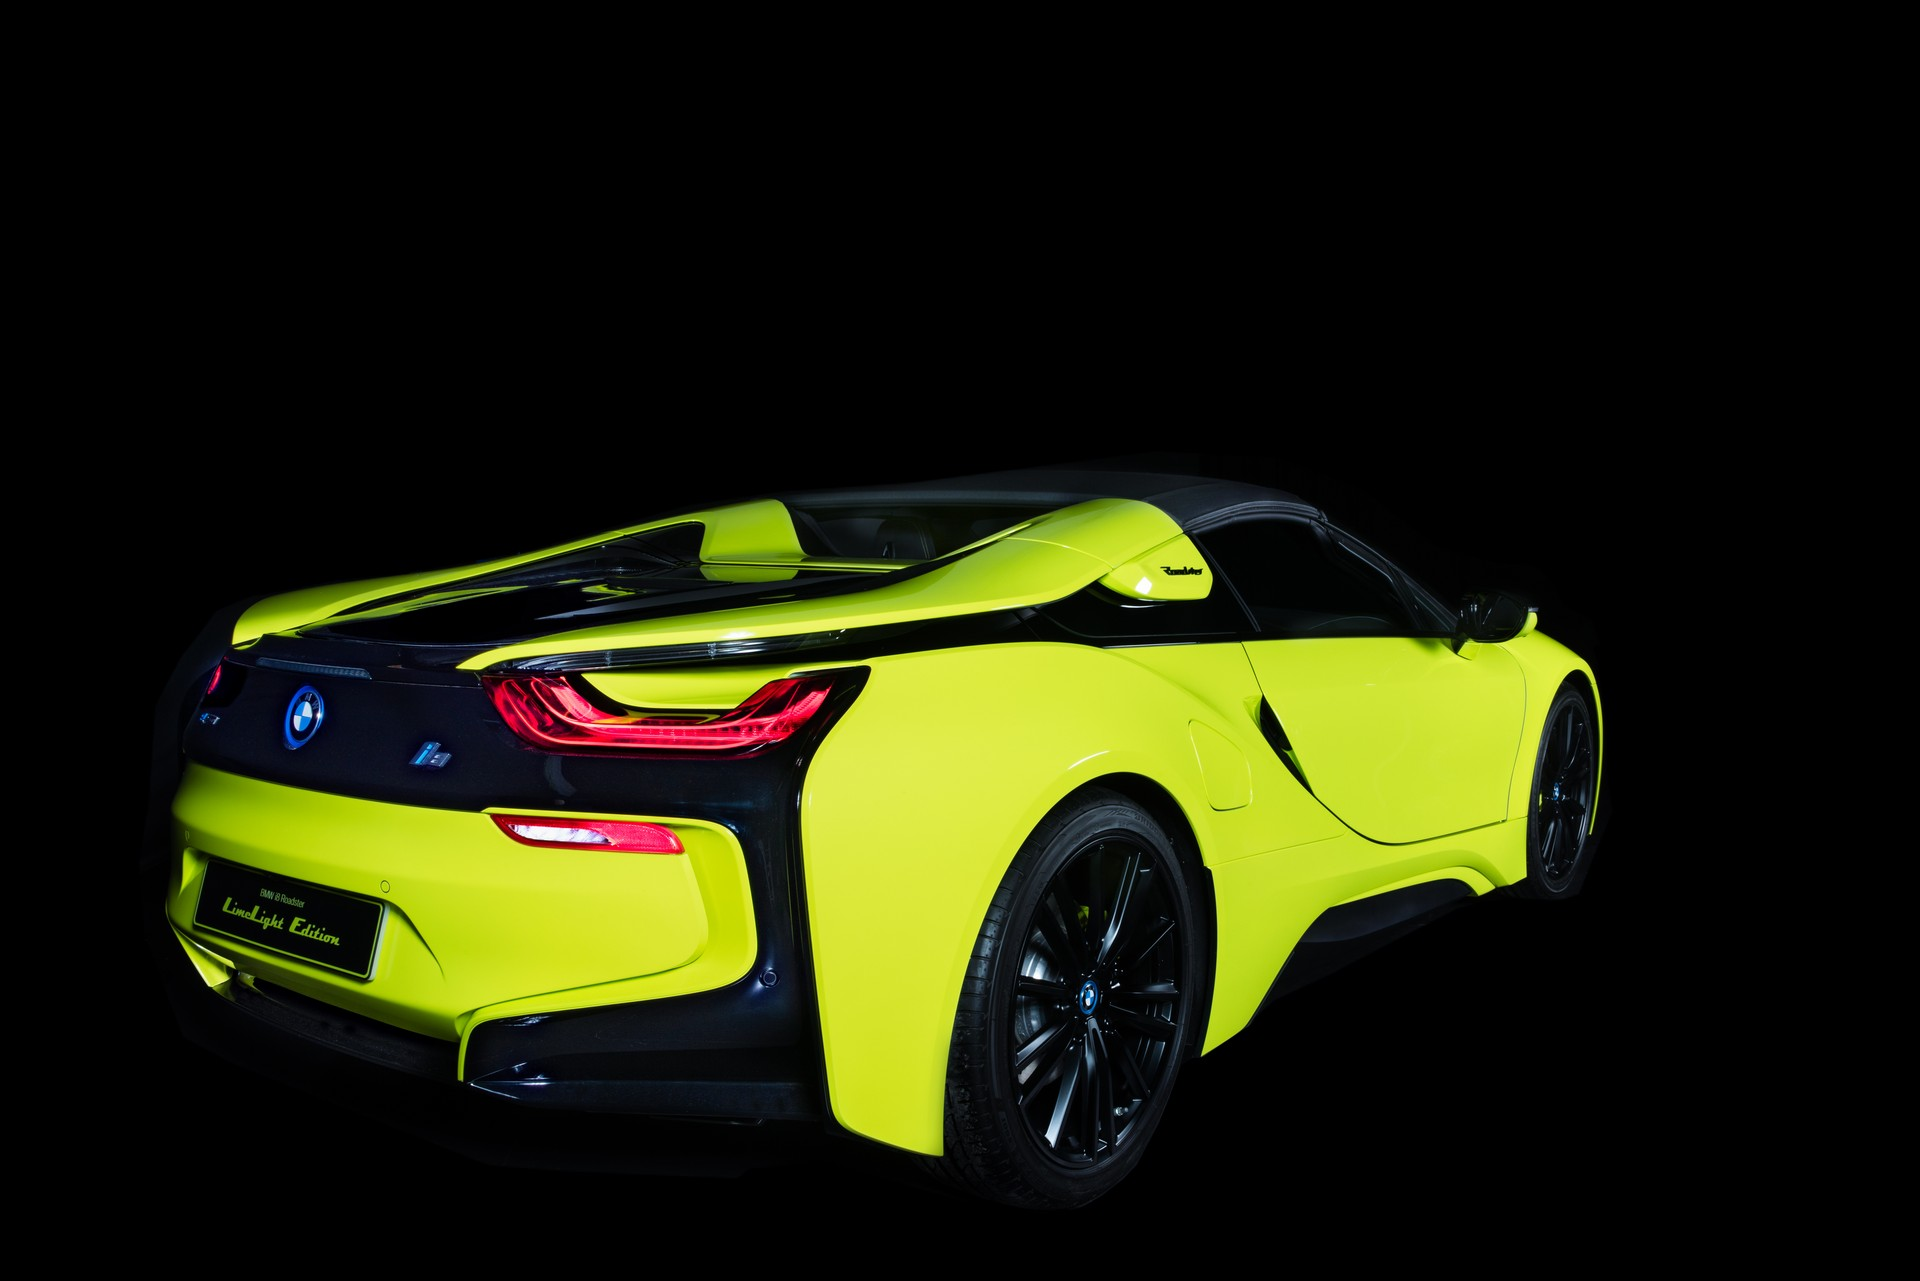 BMW-i8-Roadster-LimeLight-Edition-12